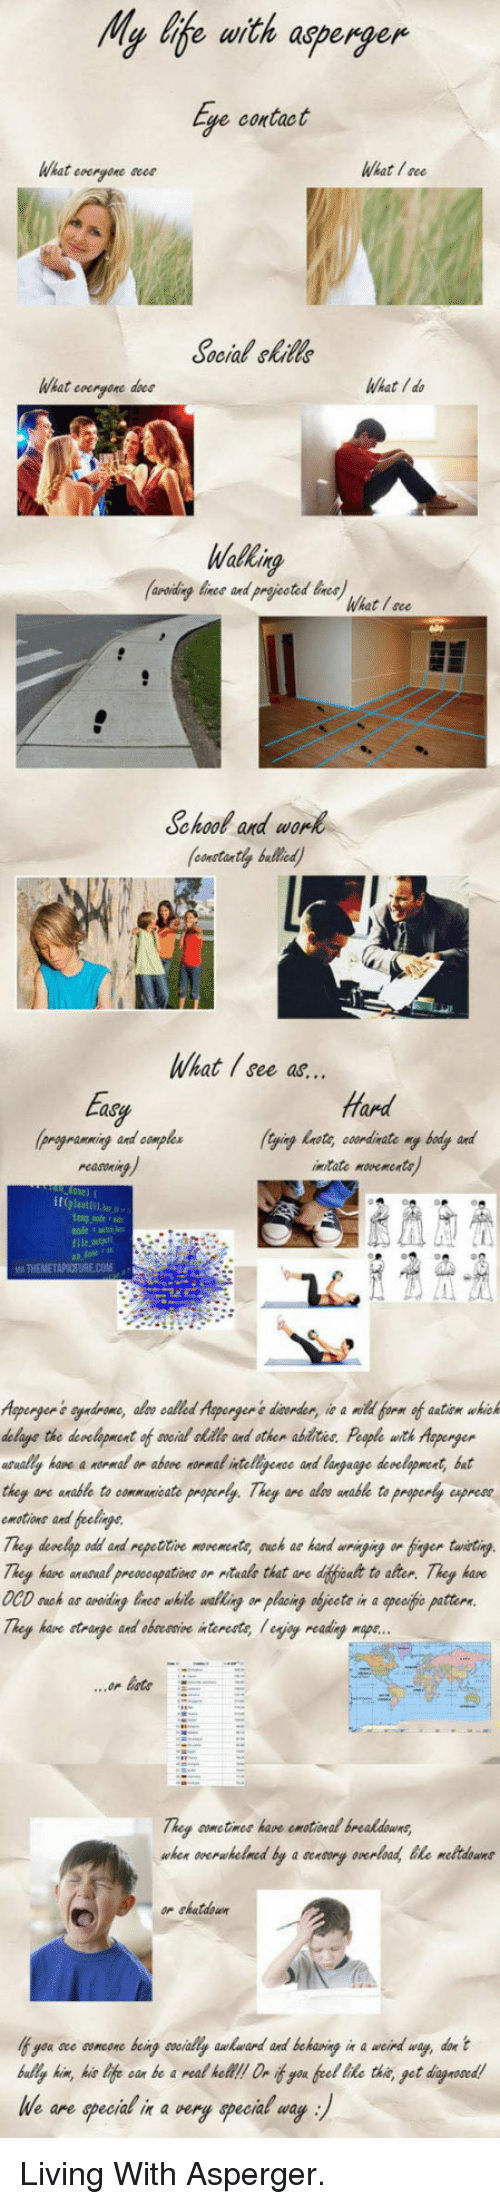 Doe, School, and Awkward: My Iife with asperger  Eye contact  What everyone c  What ace  Social &kill  What evergone dece  WhatId  areiding lince and prjted ine  What I see  School and worl  ontntly bullied  What Isce as  Endy  prograemning and comples  ing  Hard  ying lwoty eoordinate ry bly and  inate mvenente  an dose  Aspenger's eyndrome, also called Asperger's disorder, ie a mbl berm of aatiem whic  delaye the development of aneial olidle and other abttee. Peple witk Aoperger  l hane amal on abore normal itelipenee and language denelopment, bat  they are wrable to commuicate preperly. They are  mtine and felnpe  alv anable to property aprese  Theg hare unarual preseoupatione on ntaale that are diffeat to ater. Theg kan  OCD uck as arn whie walling on placing objeete in a peefe pattern  They have etrae  and obocovive interests lejiey readingmap  They ome tines hare emotional brealdouns,  or skatdown  you are aumeone being wially awkward and behaving in a weind way, doe t  bully kim, kilife ean be a real hll n if you fel lite th get diagnooed!  We are specia& in a very special way <p>Living With Asperger.</p>